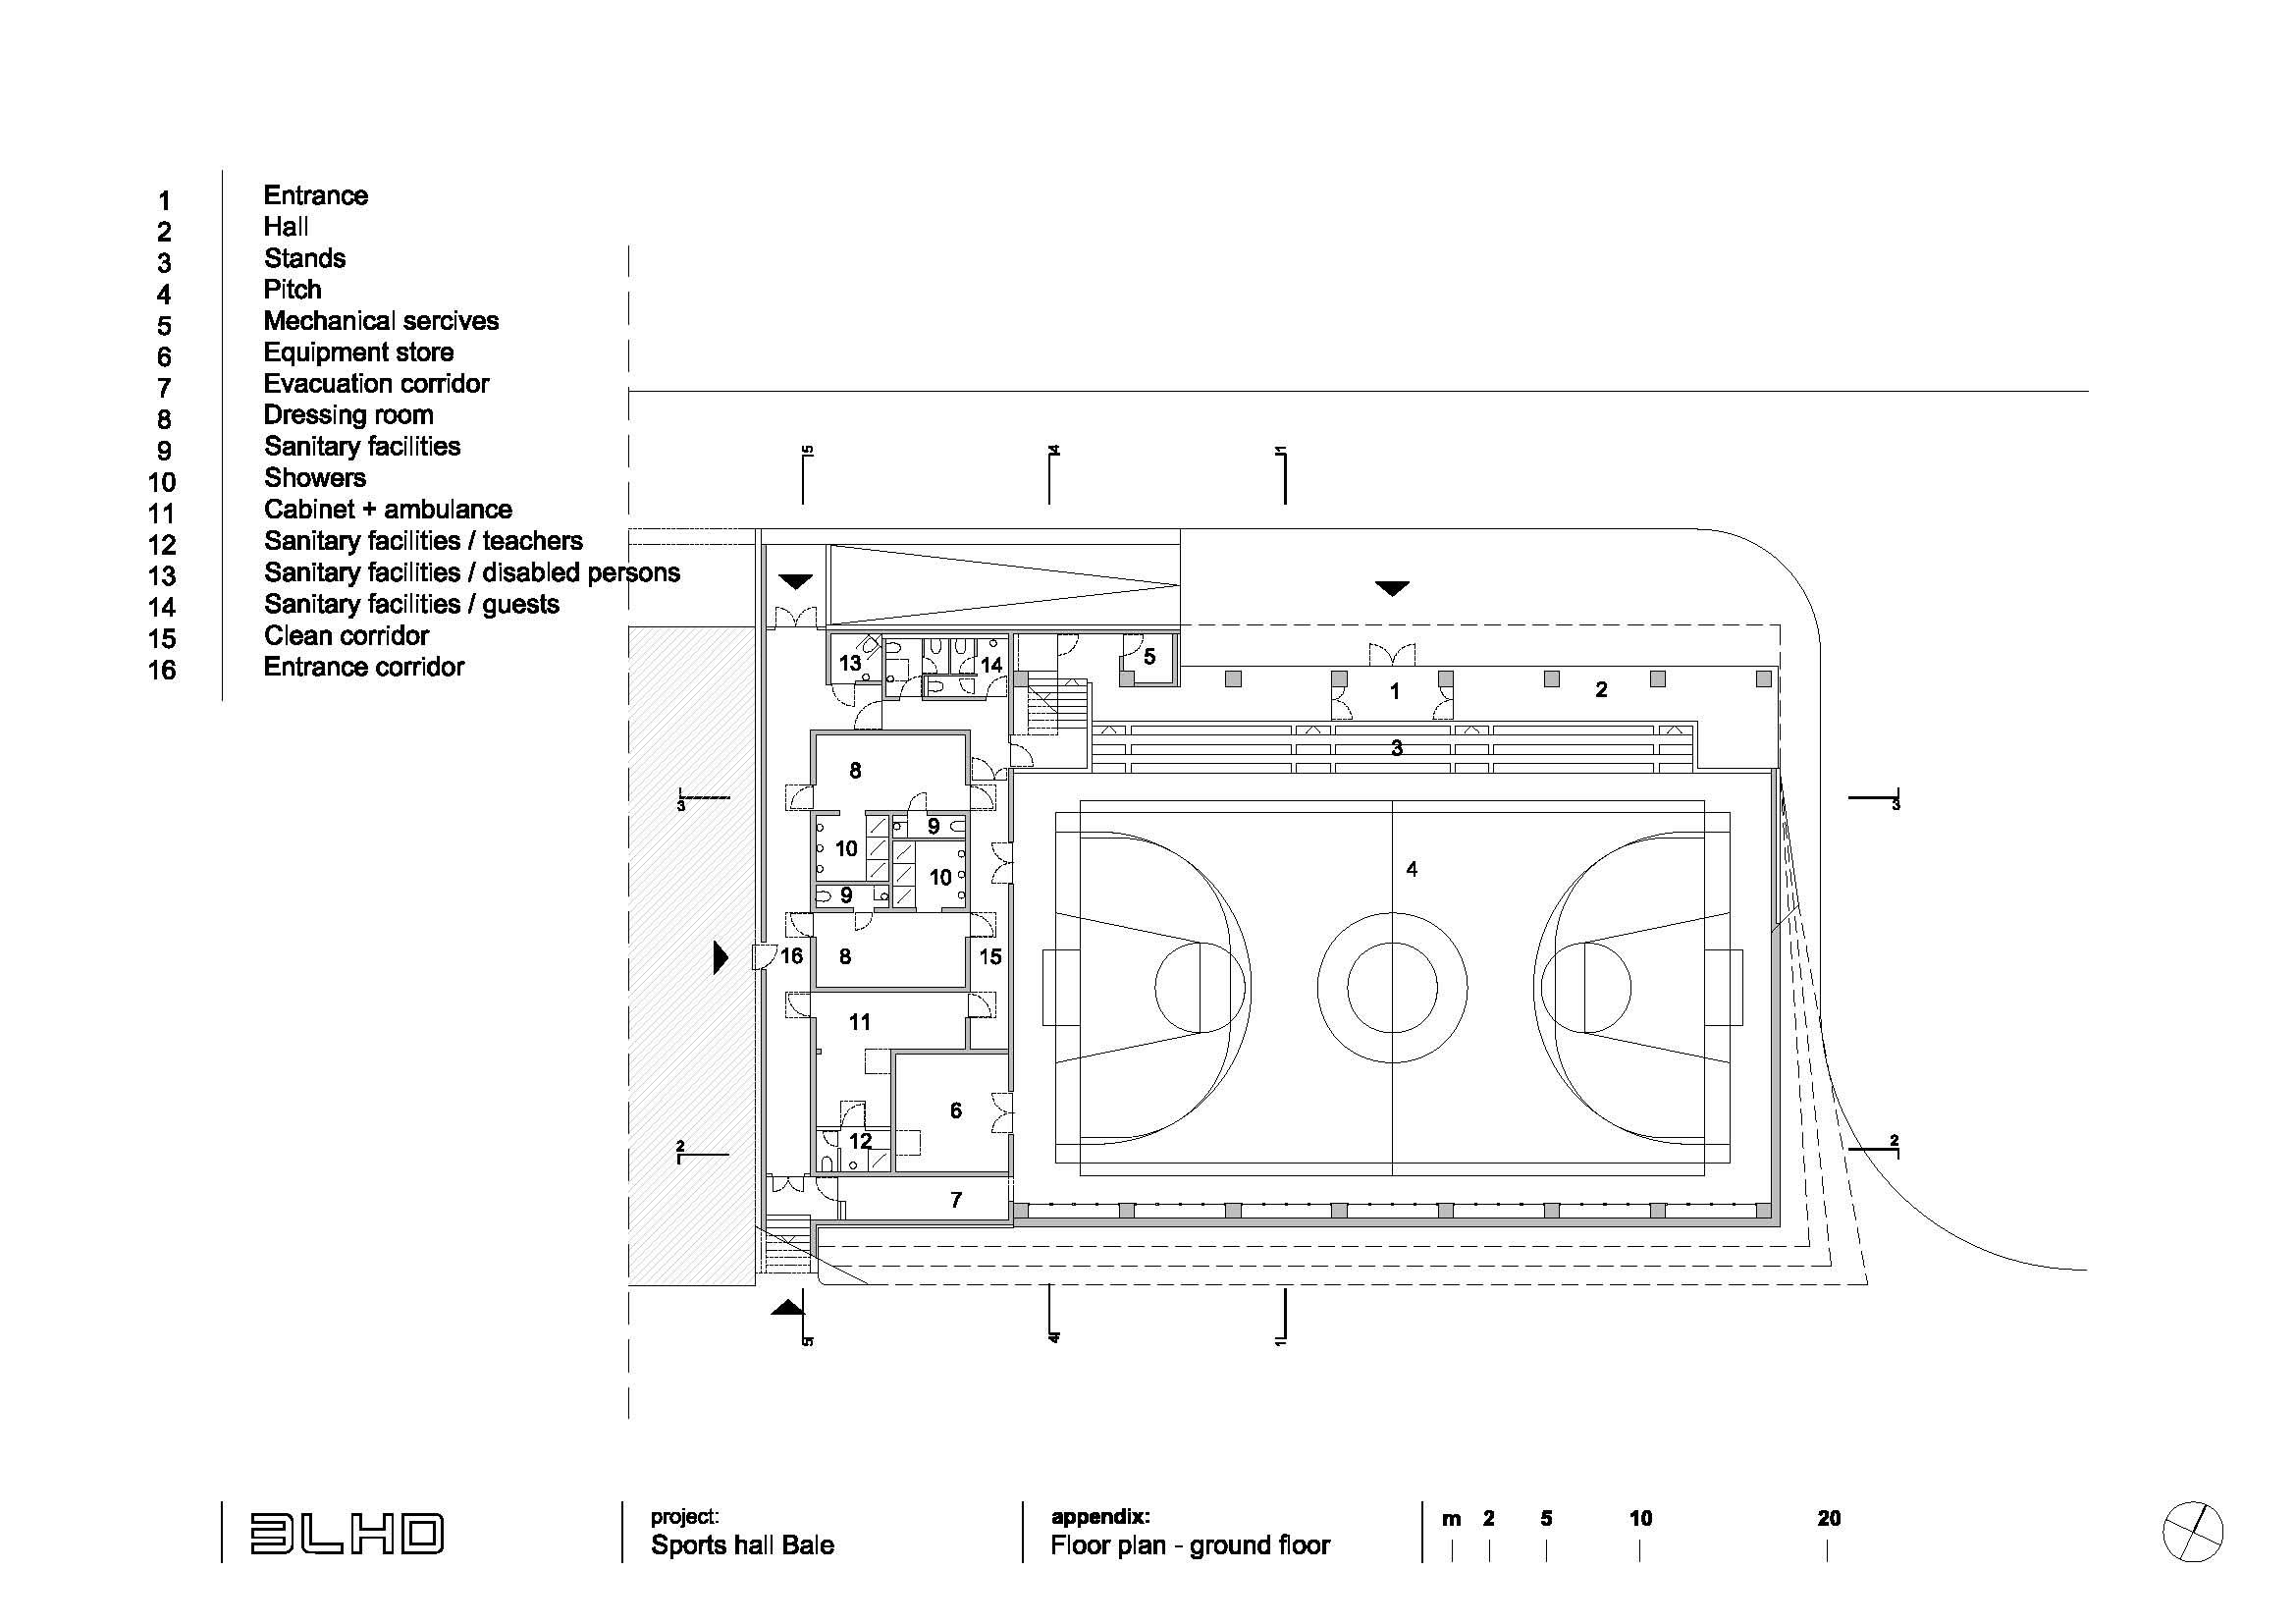 Image from http://www.arthitectural.com/wp-content/uploads/2010/10/3LHD_Sports_Hall_Bale_drawings_ground_floor_plan.jpg.